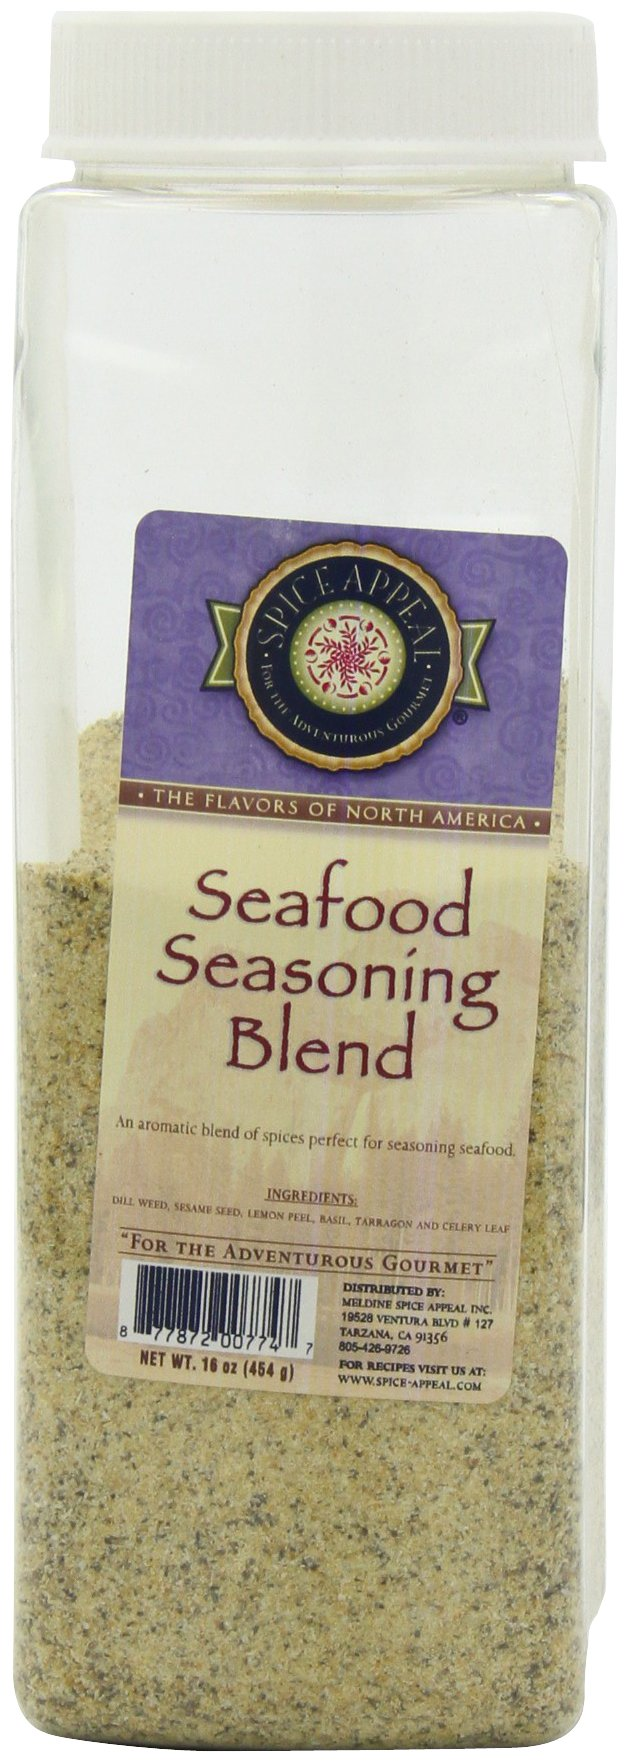 Spice Appeal Seafood Seasoning Blend, 16 Ounce